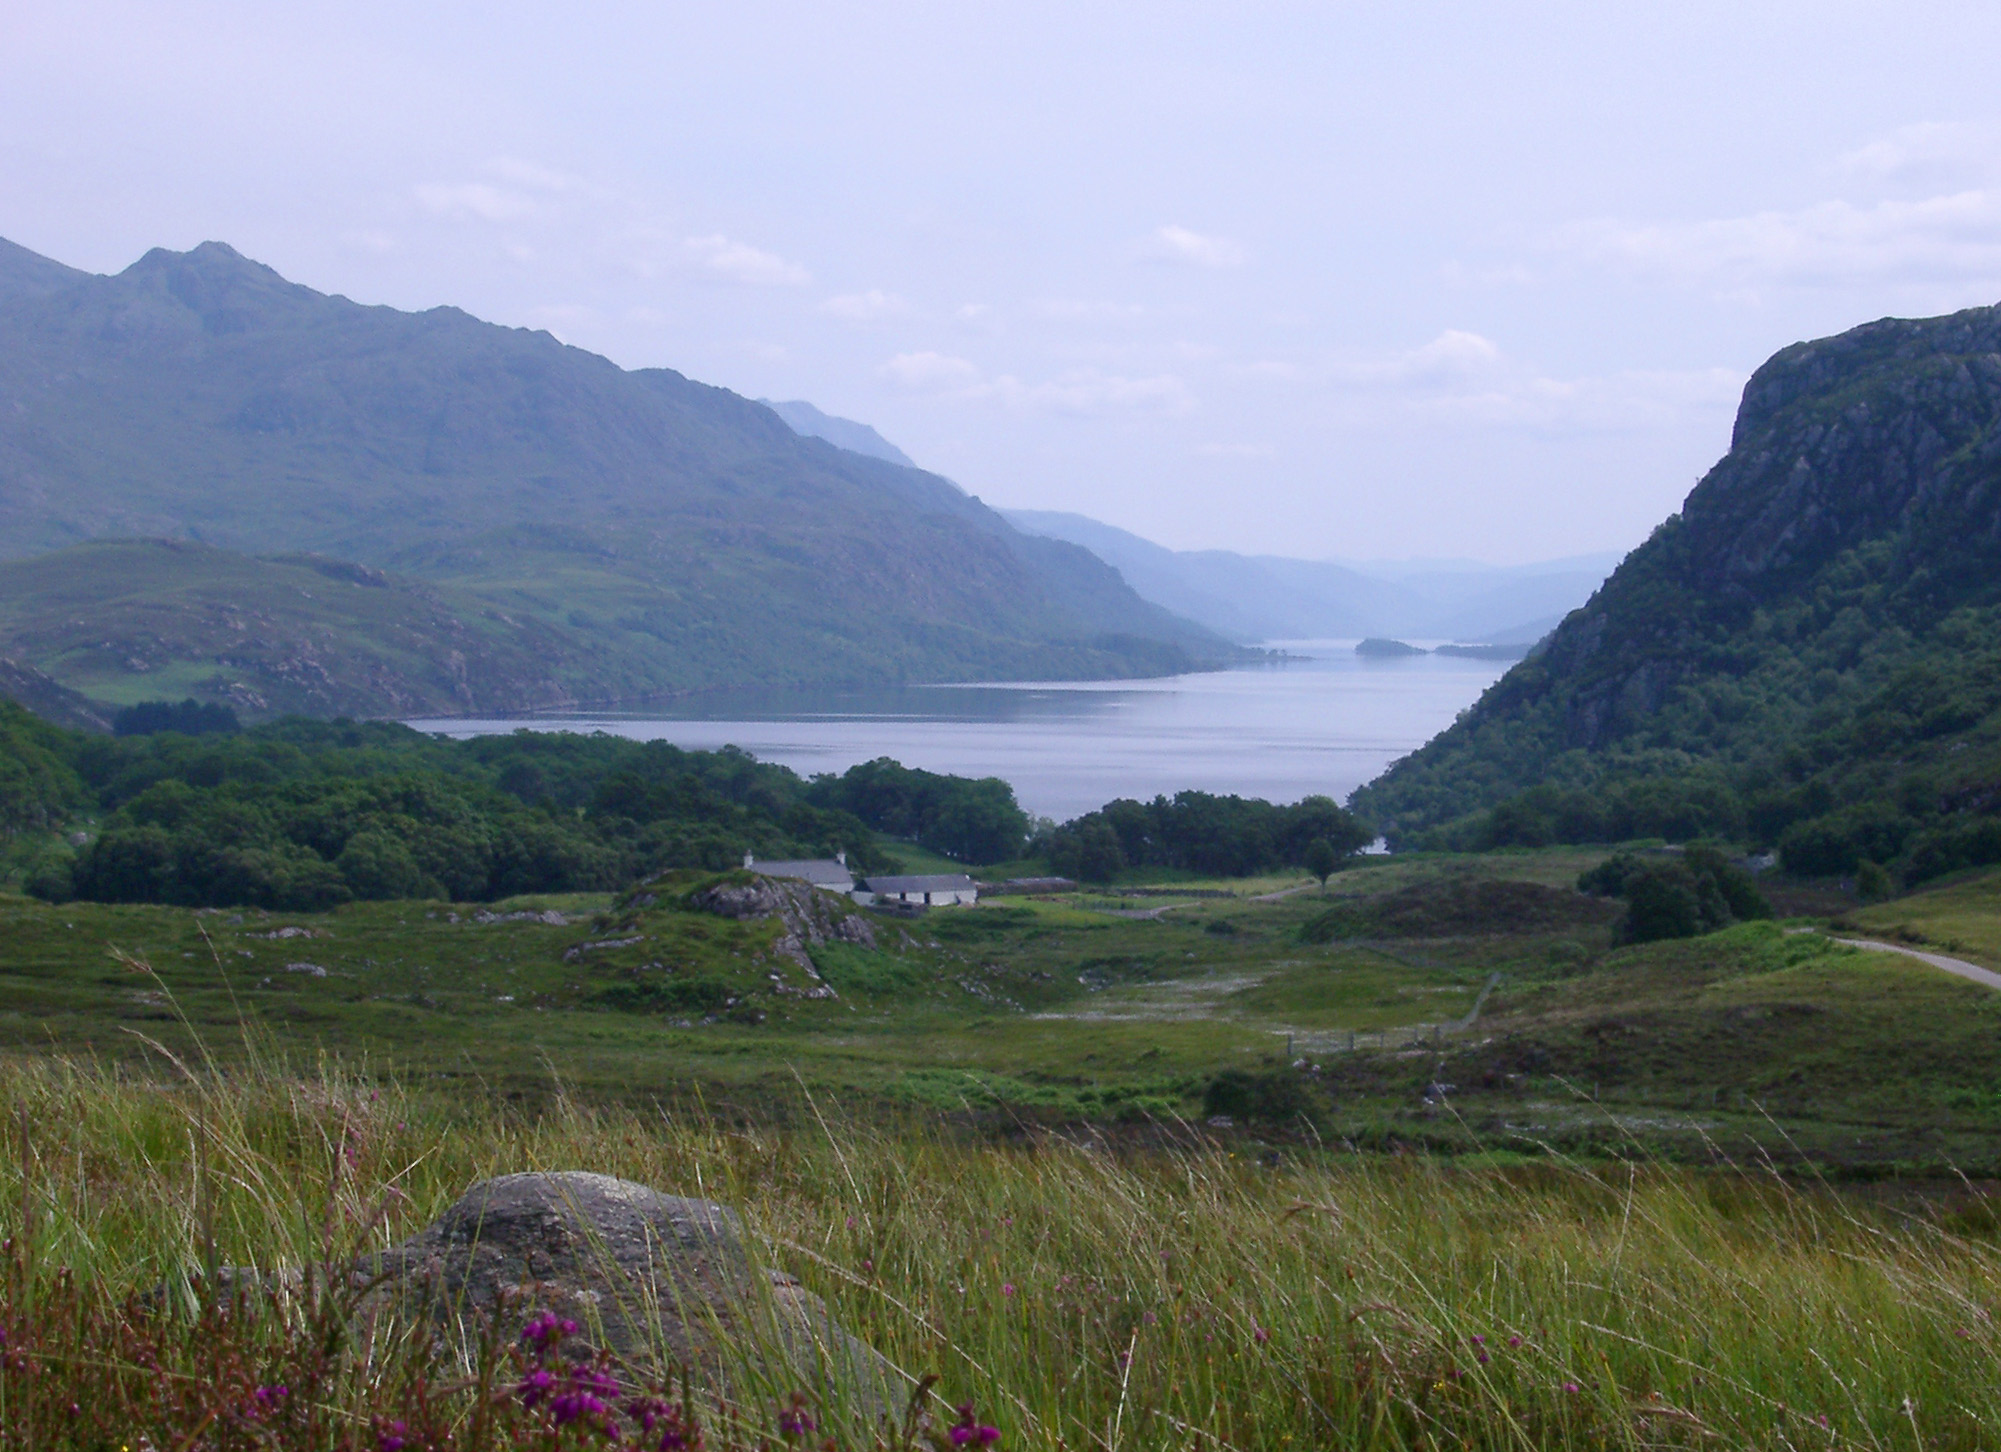 Tranquil Scottish landscape with heather growing on the shores of a misty loch bounded by rugged mountain peaks